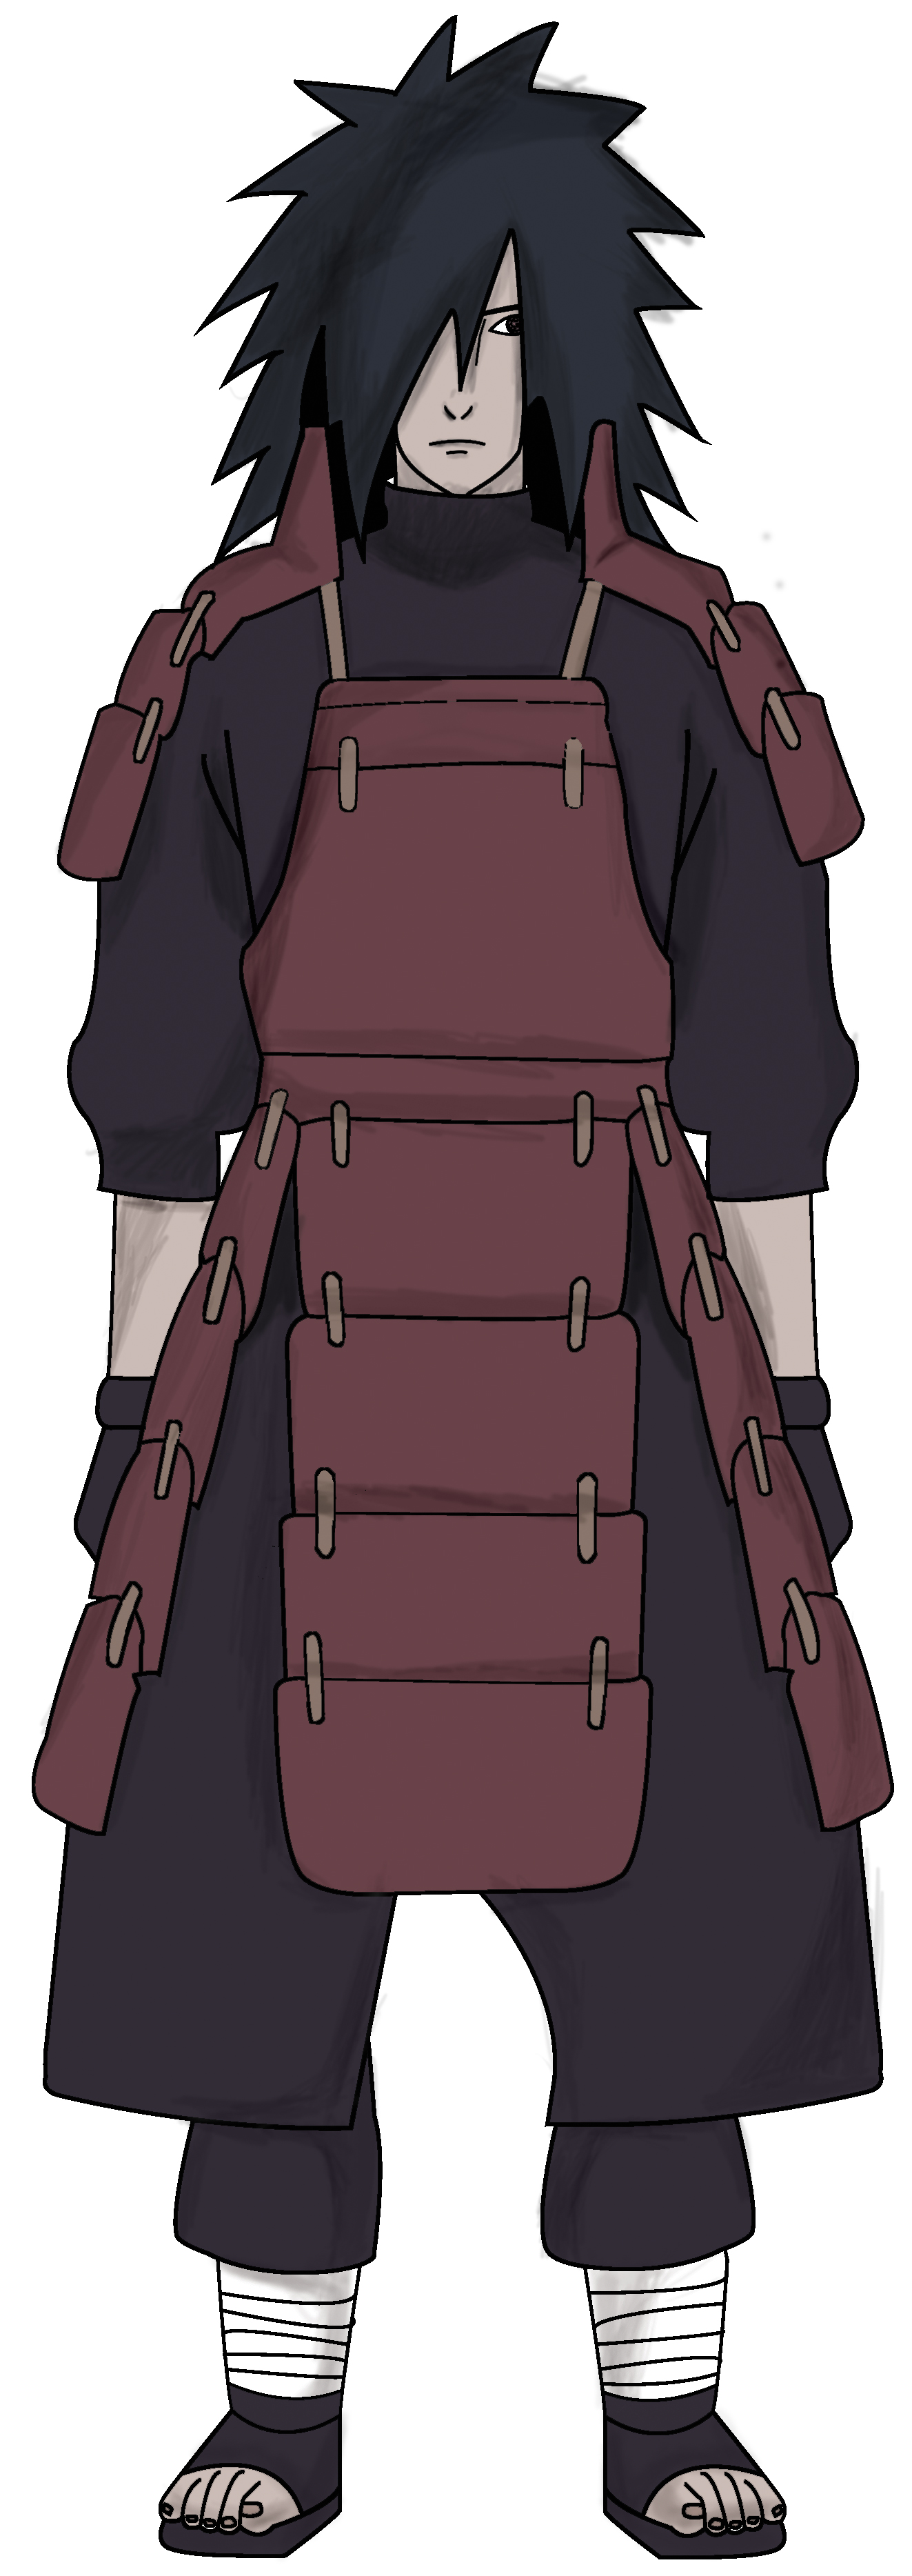 full body Uchiha Madara by Remura50 on DeviantArt